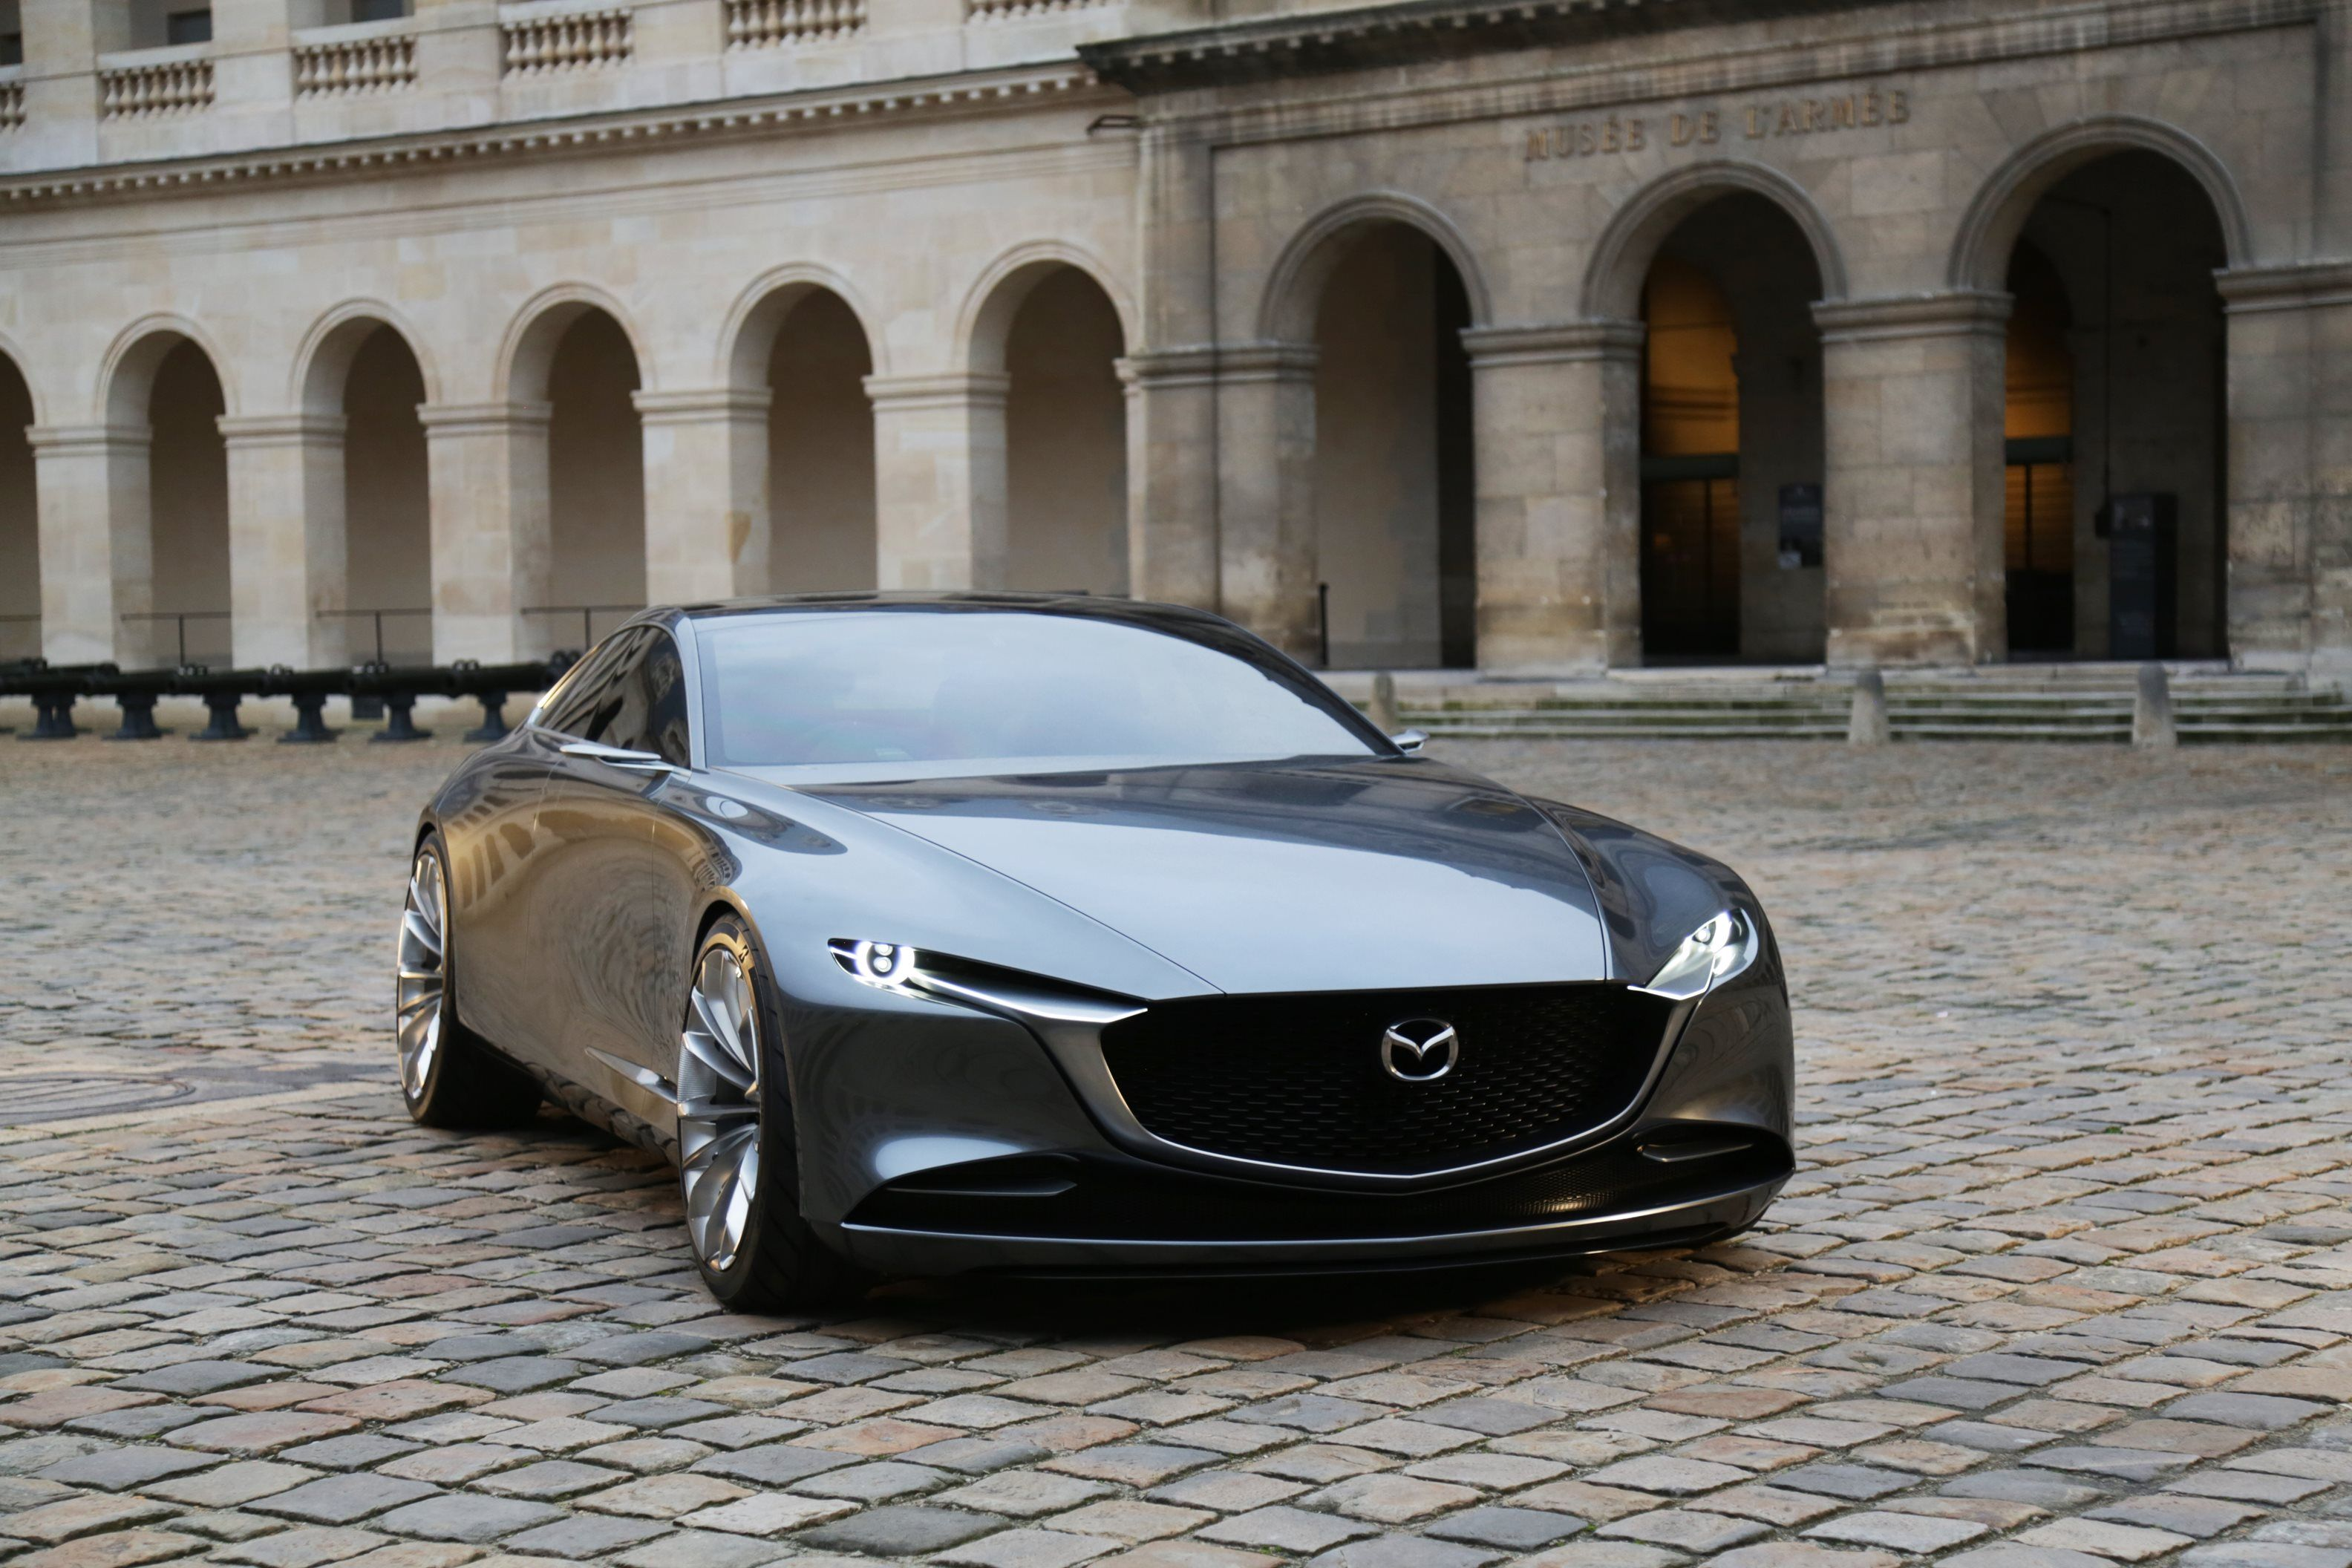 "EL MAZDA VISION COUPE GANA EL PREMIO ""MOST BEAUTIFUL CONCEPT CAR OF THE YEAR"""